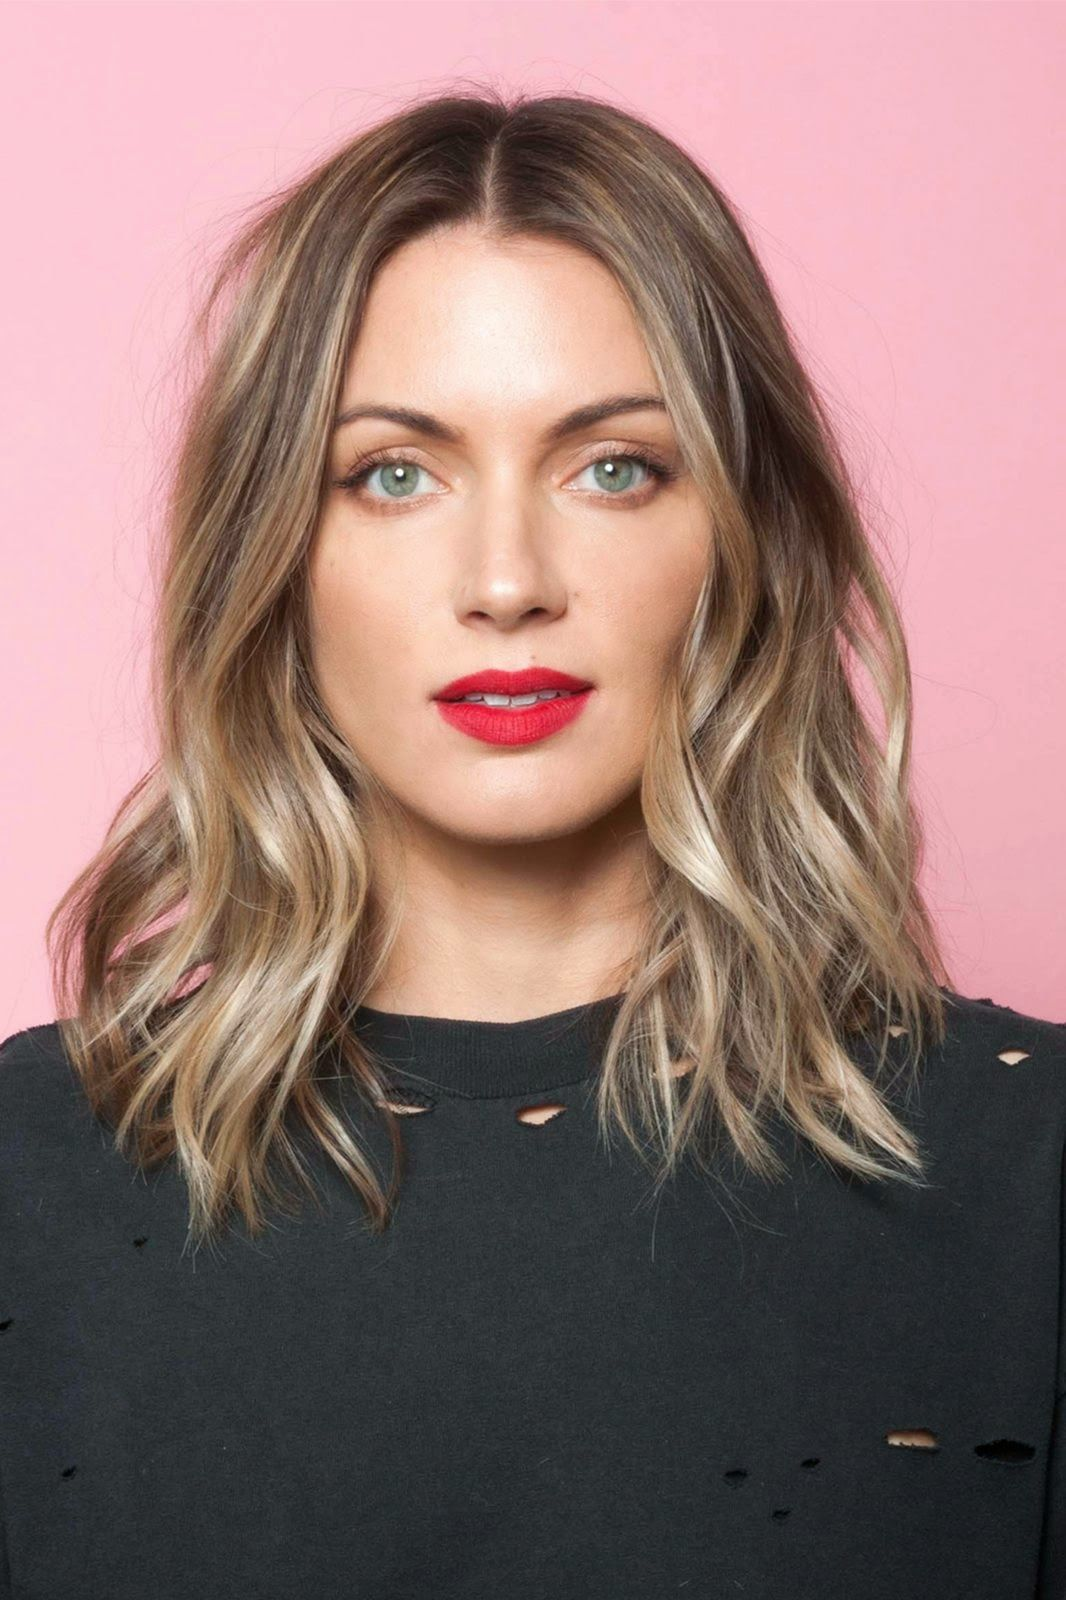 Brunette Hairstyles Harlyn Sage The Lob #lob #bob #ombre #blonde #brunette #hairstyle